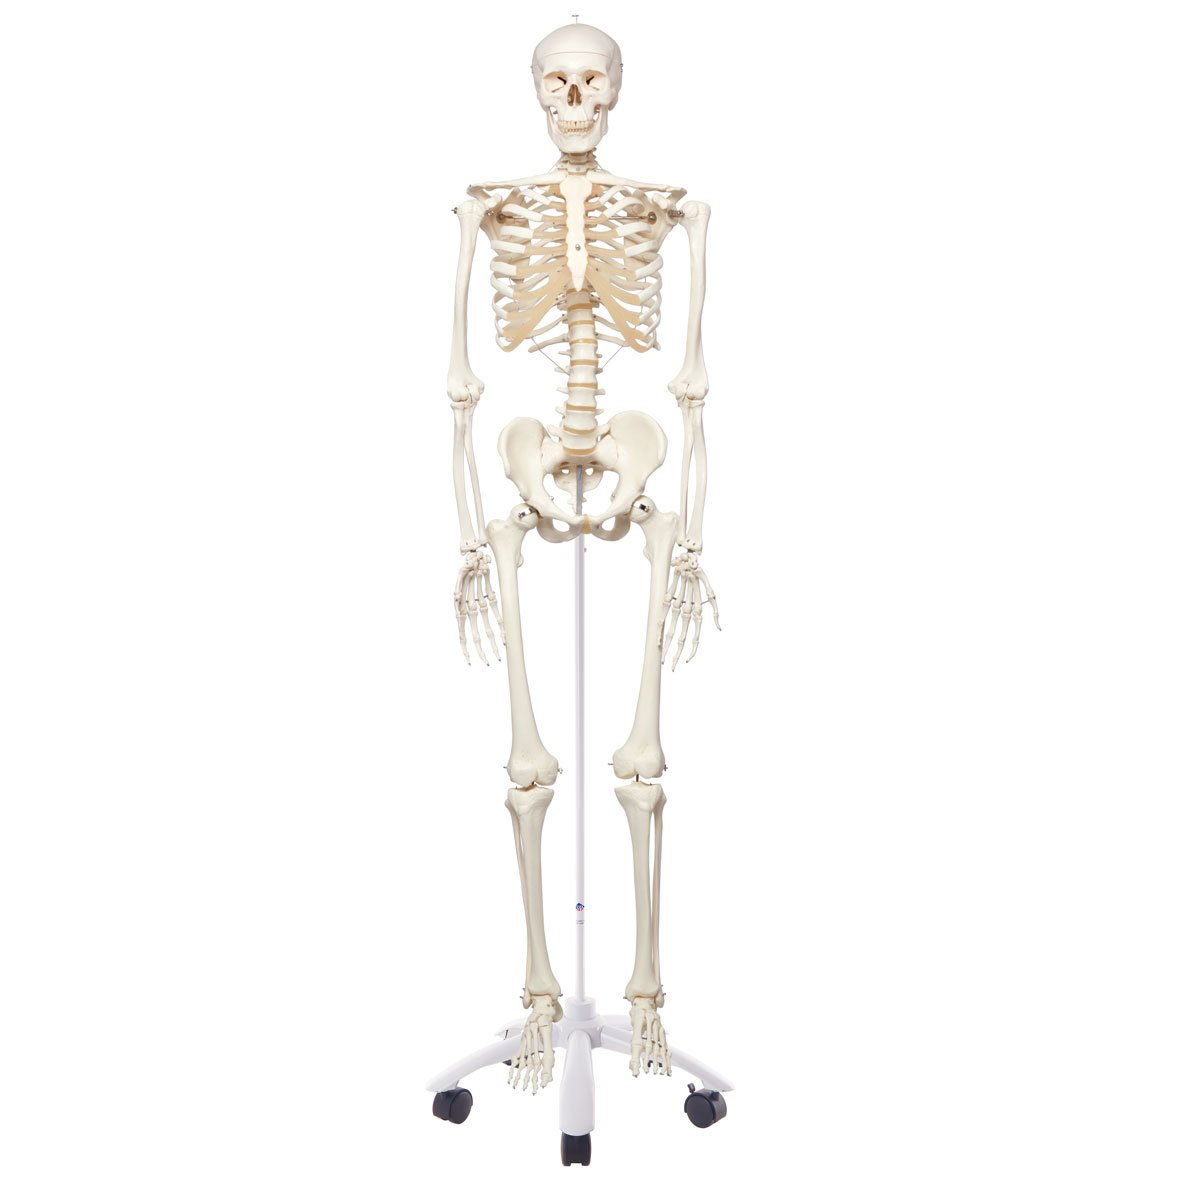 3b Scientific A101 Plastic Human Skeleton Model Stan On Hanging